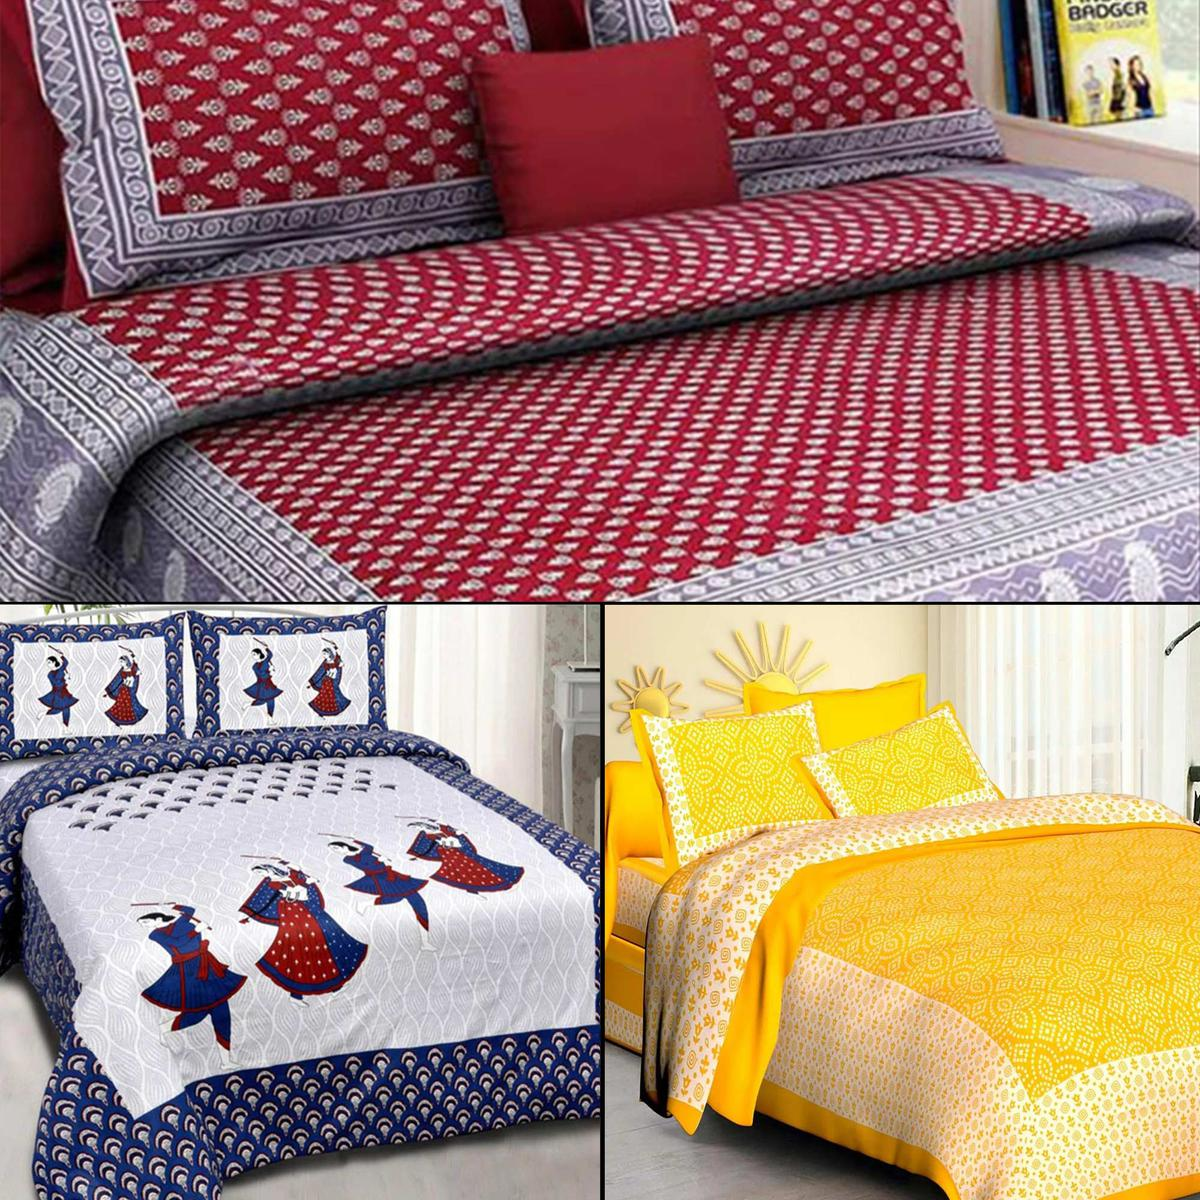 Entrancing Printed Double Bed Sheets With 2 Pillow Covers - Pack of 3